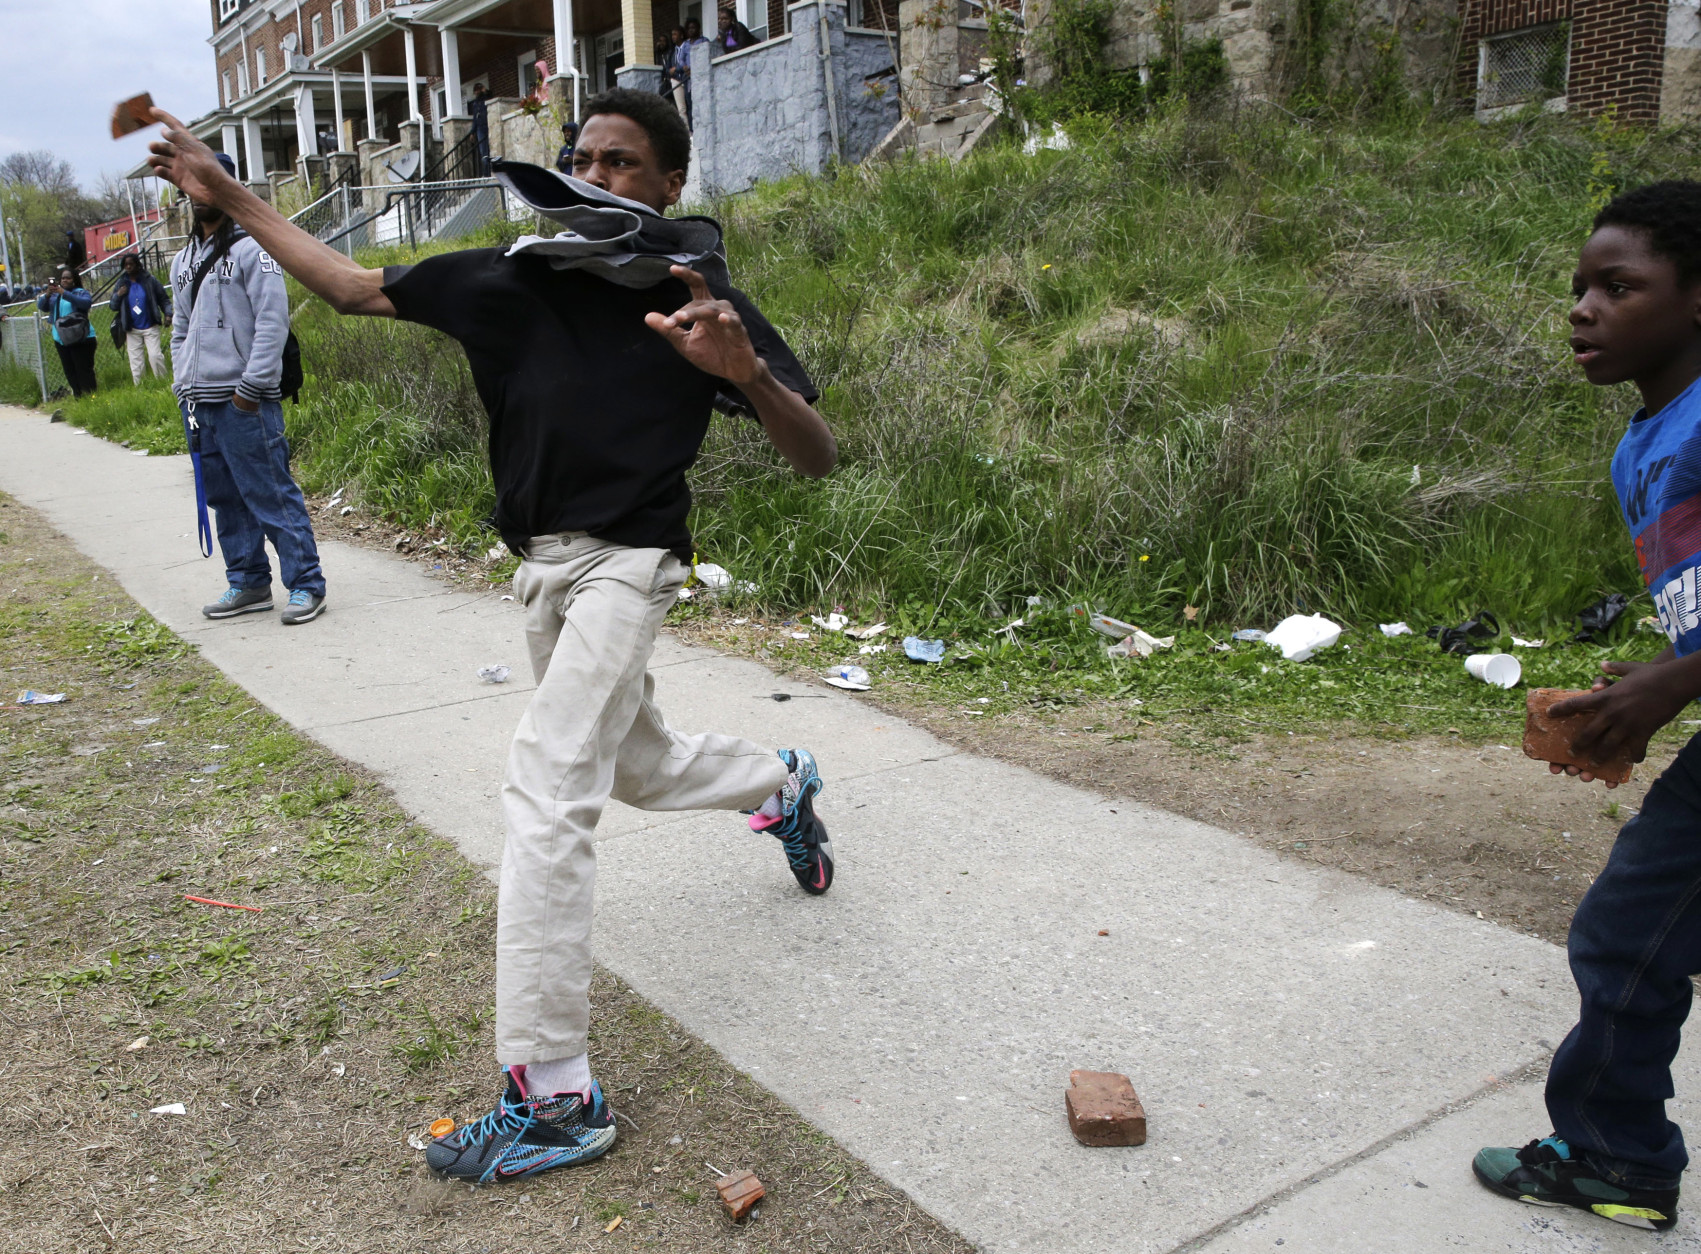 A boy throws a brick at police, Monday, April 27, 2015, during unrest following the funeral of Freddie Gray in Baltimore. Gray died from spinal injuries about a week after he was arrested and transported in a Baltimore Police Department van. (AP Photo/Patrick Semansky)